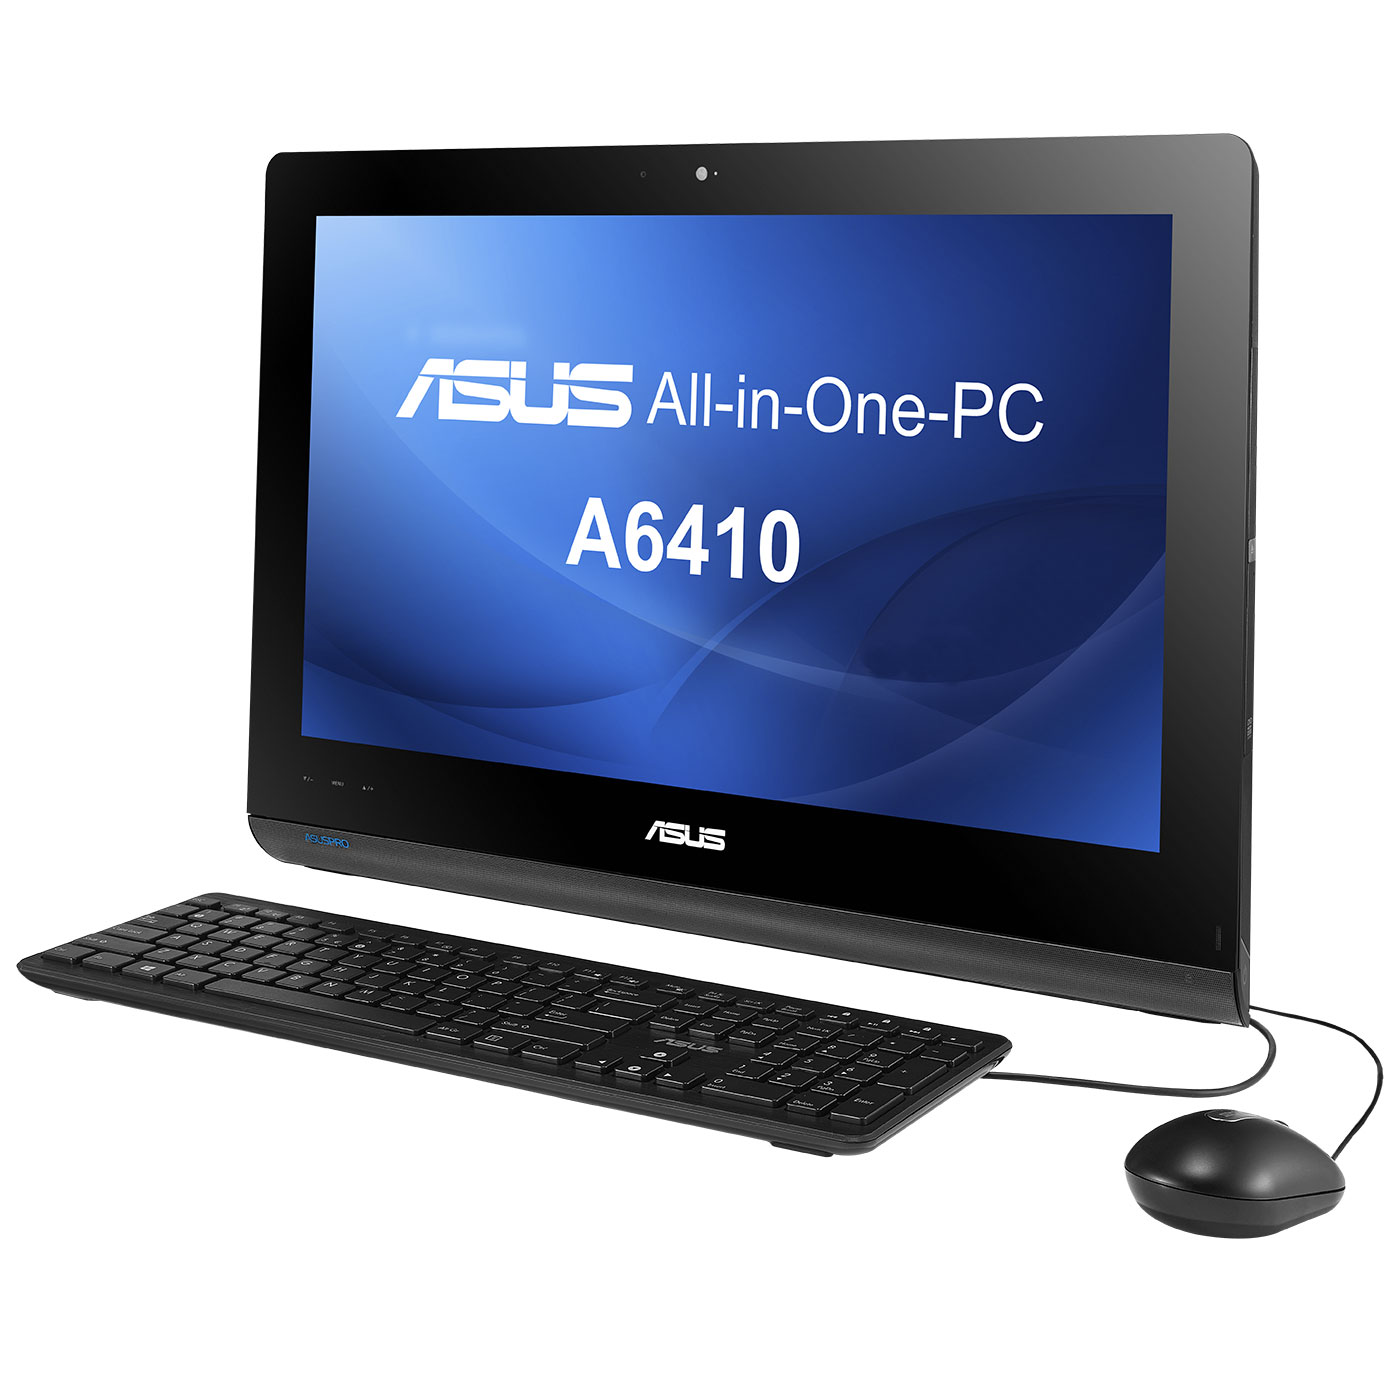 asus all in one pc a6410 bc022t pc de bureau asus sur. Black Bedroom Furniture Sets. Home Design Ideas